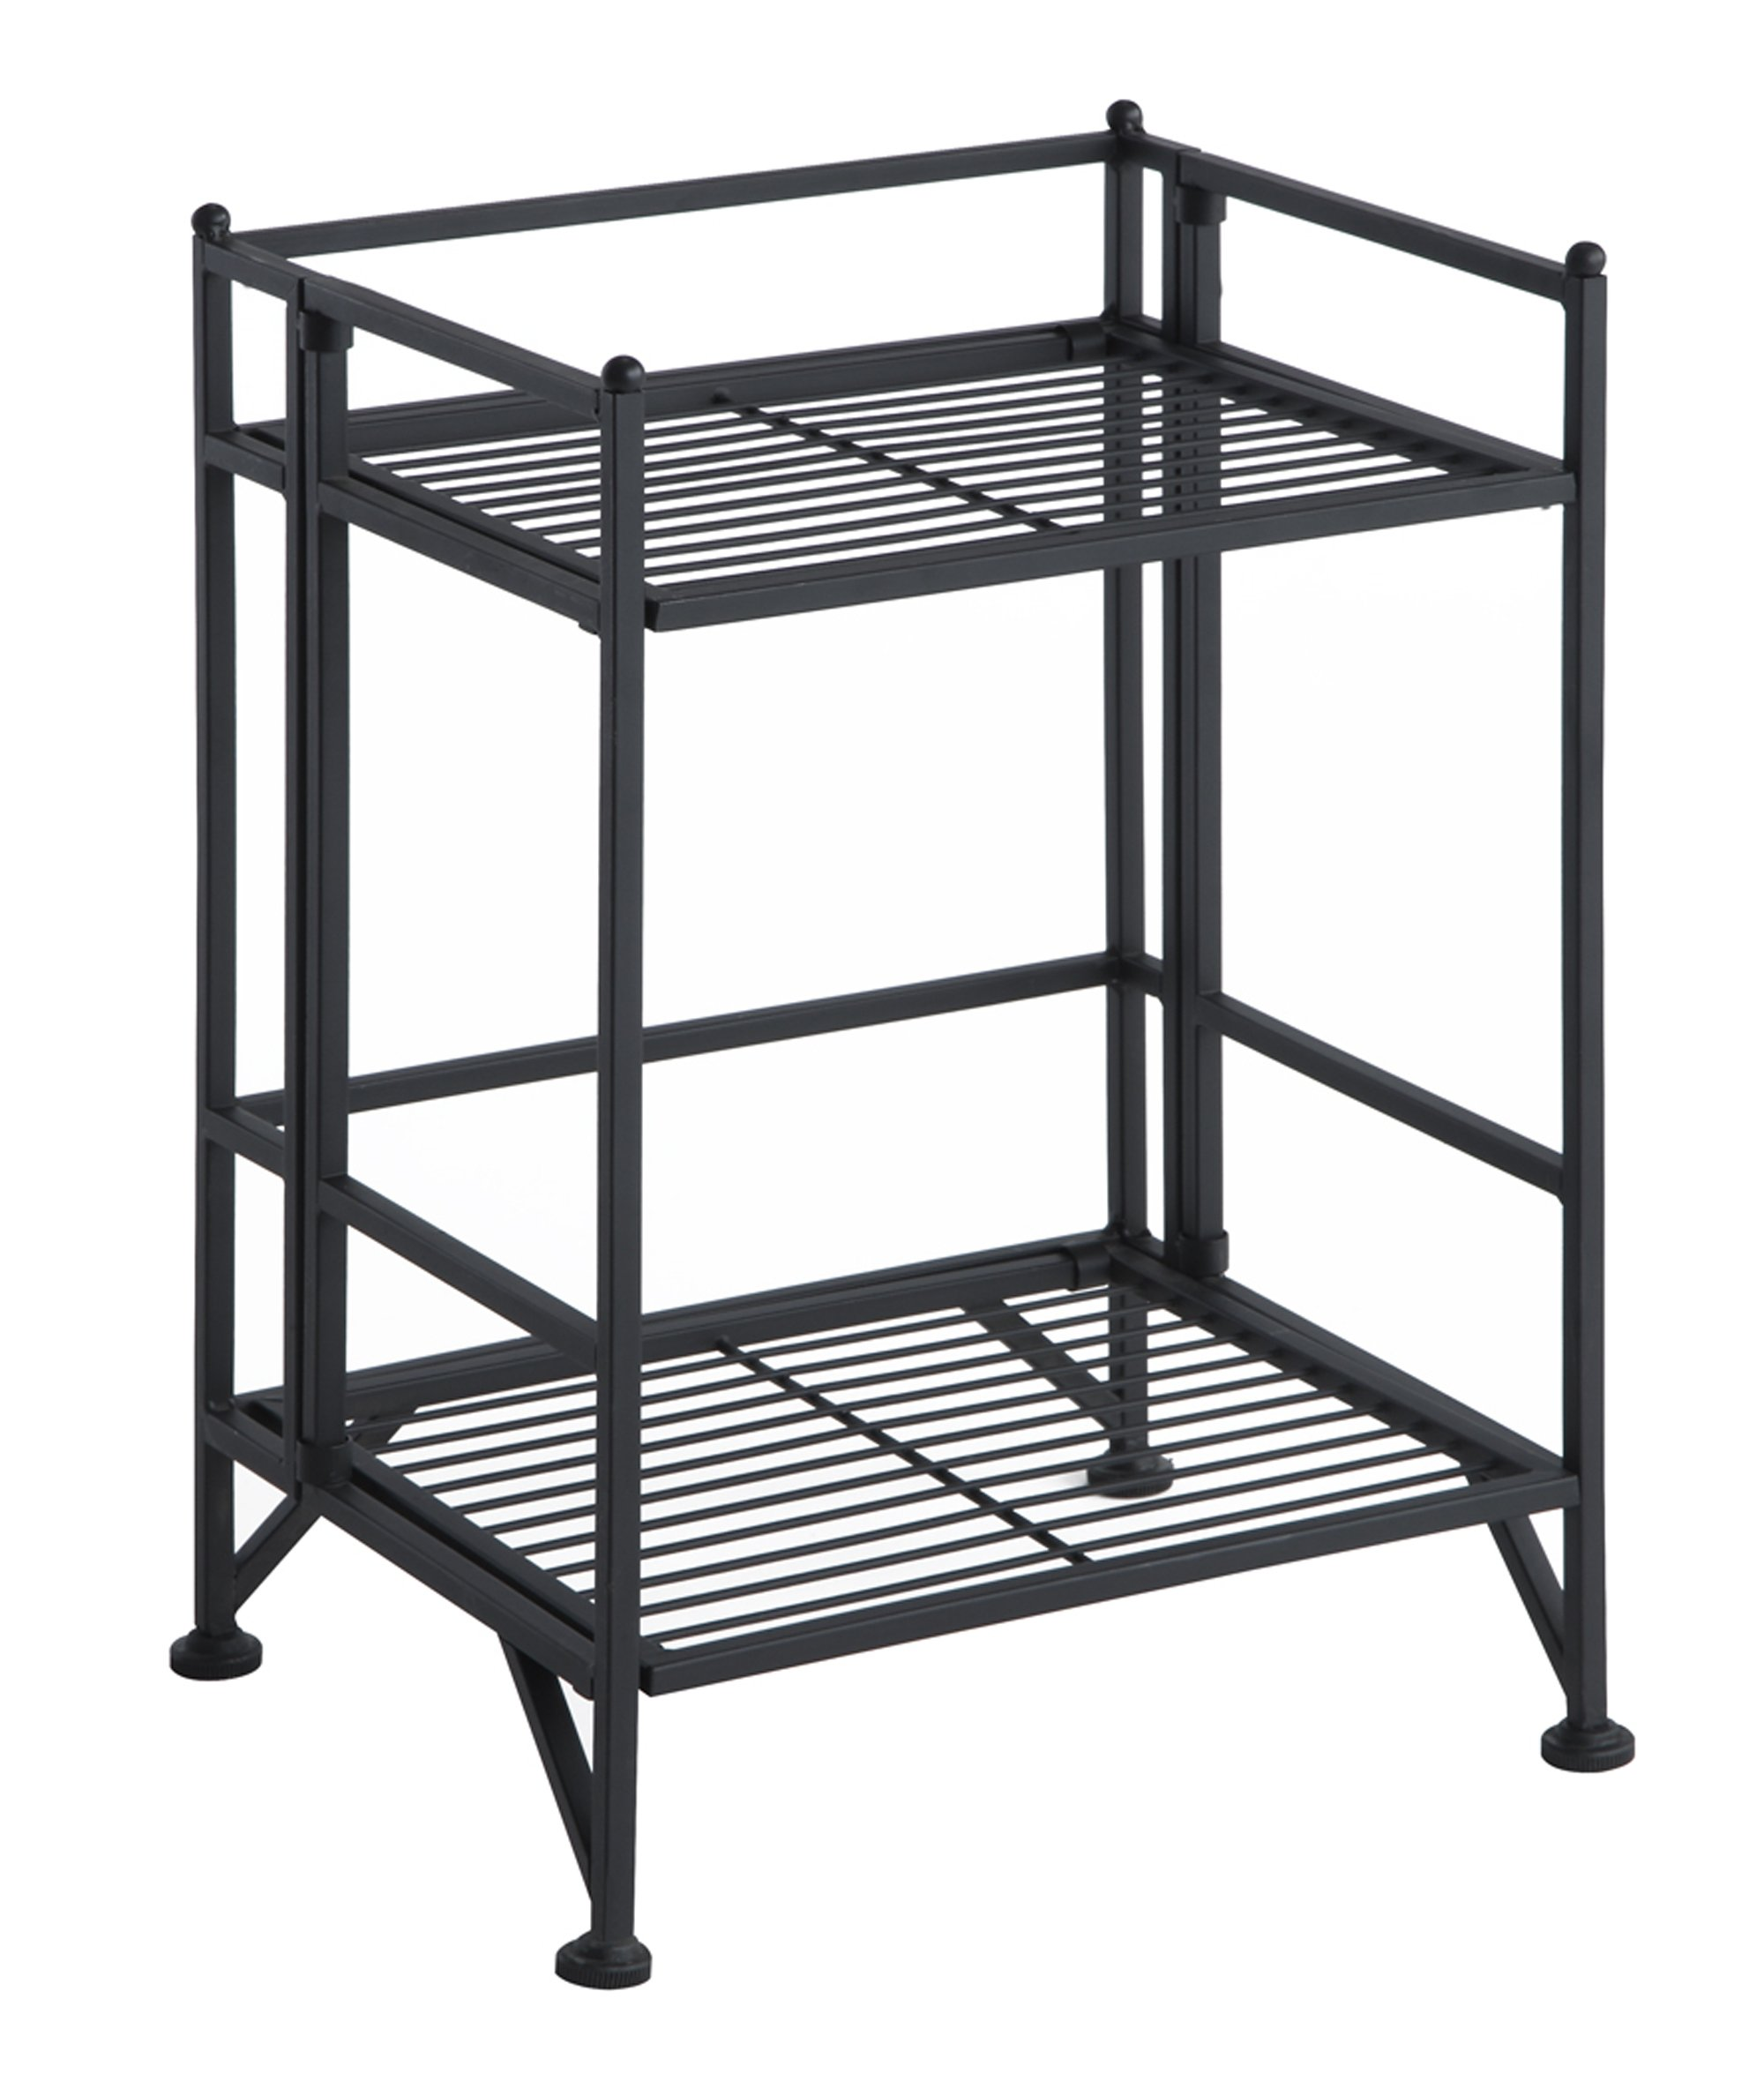 Convenience Concepts 8020B Designs2Go X-Tra Storage 2-Tier Folding Metal Shelf, Black by Convenience Concepts